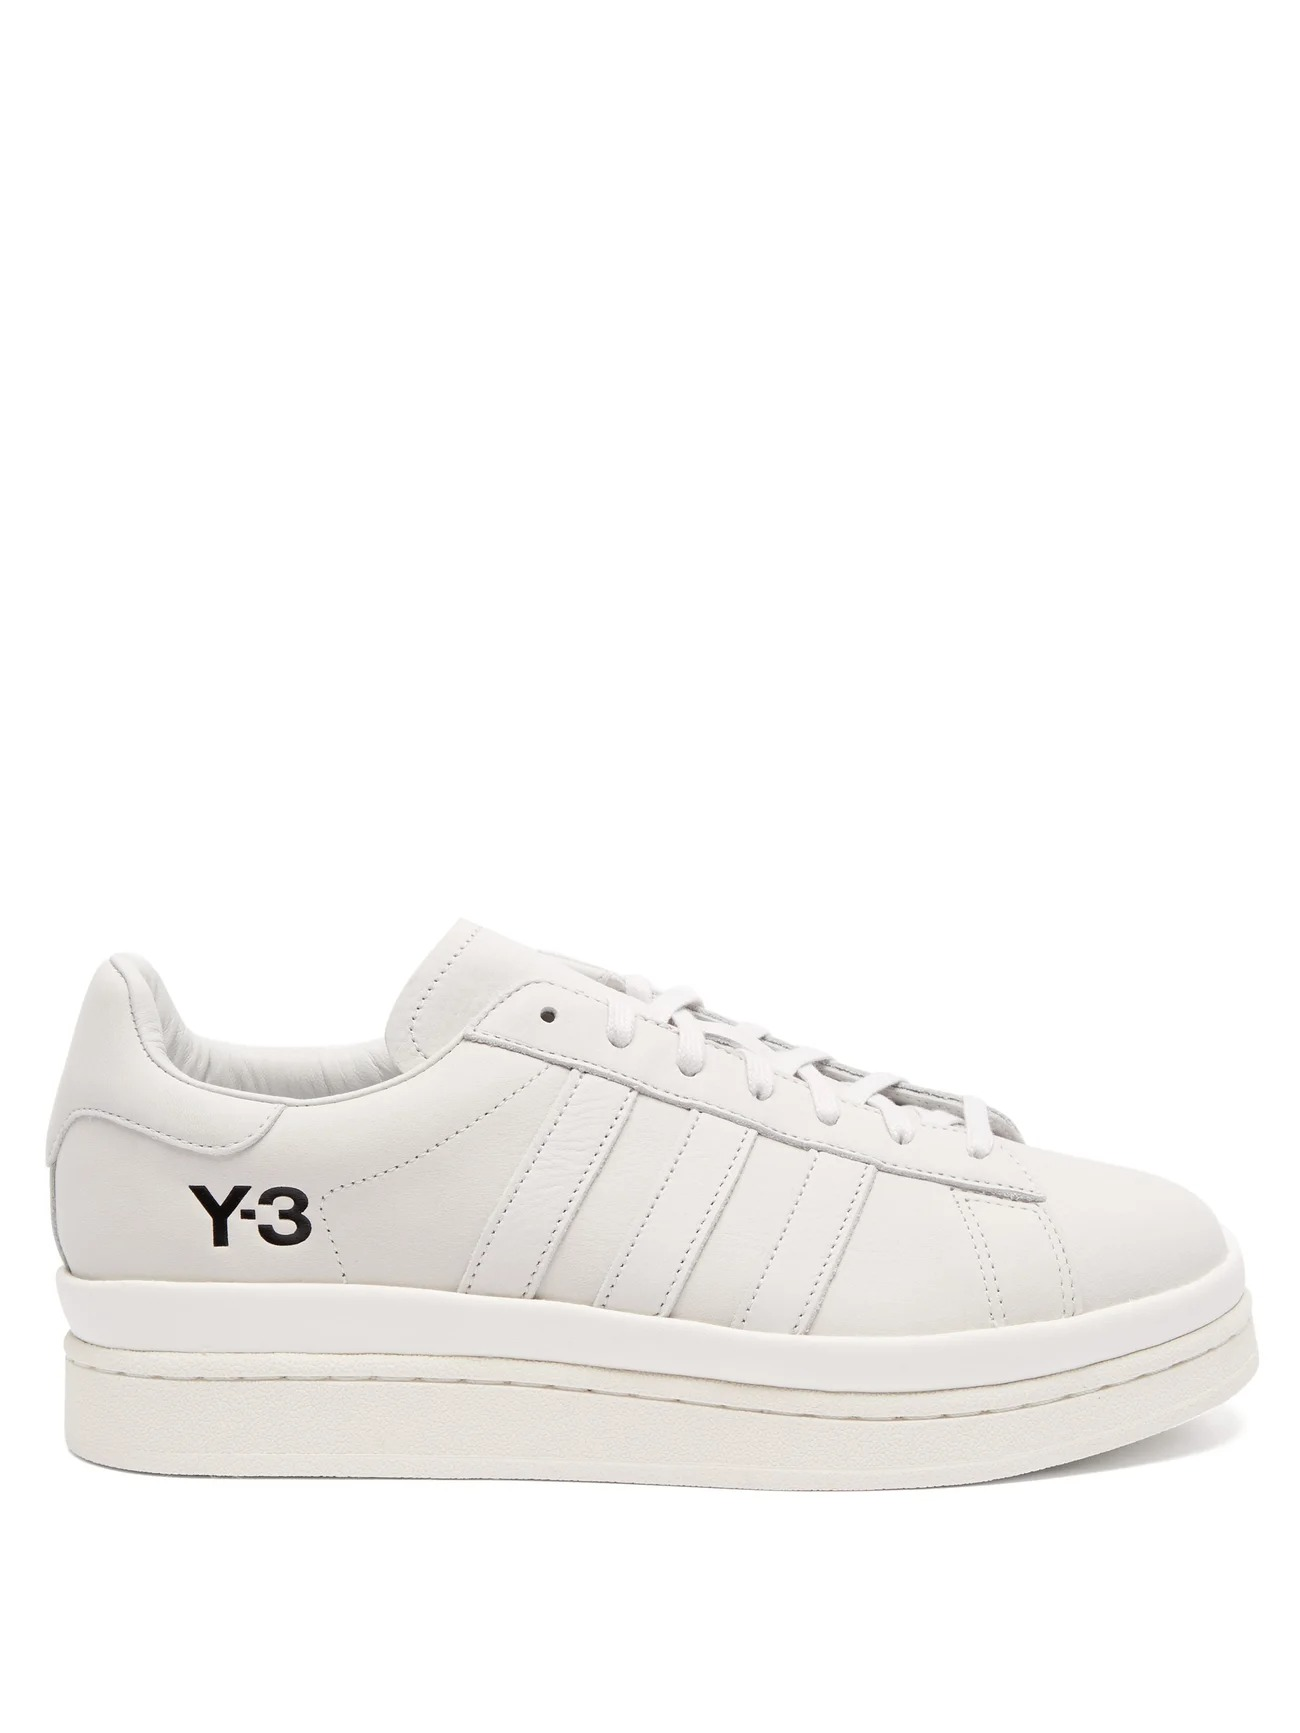 Y-3 Hicho Exaggerated Sole Leather Sneakers - Best designer sneaker